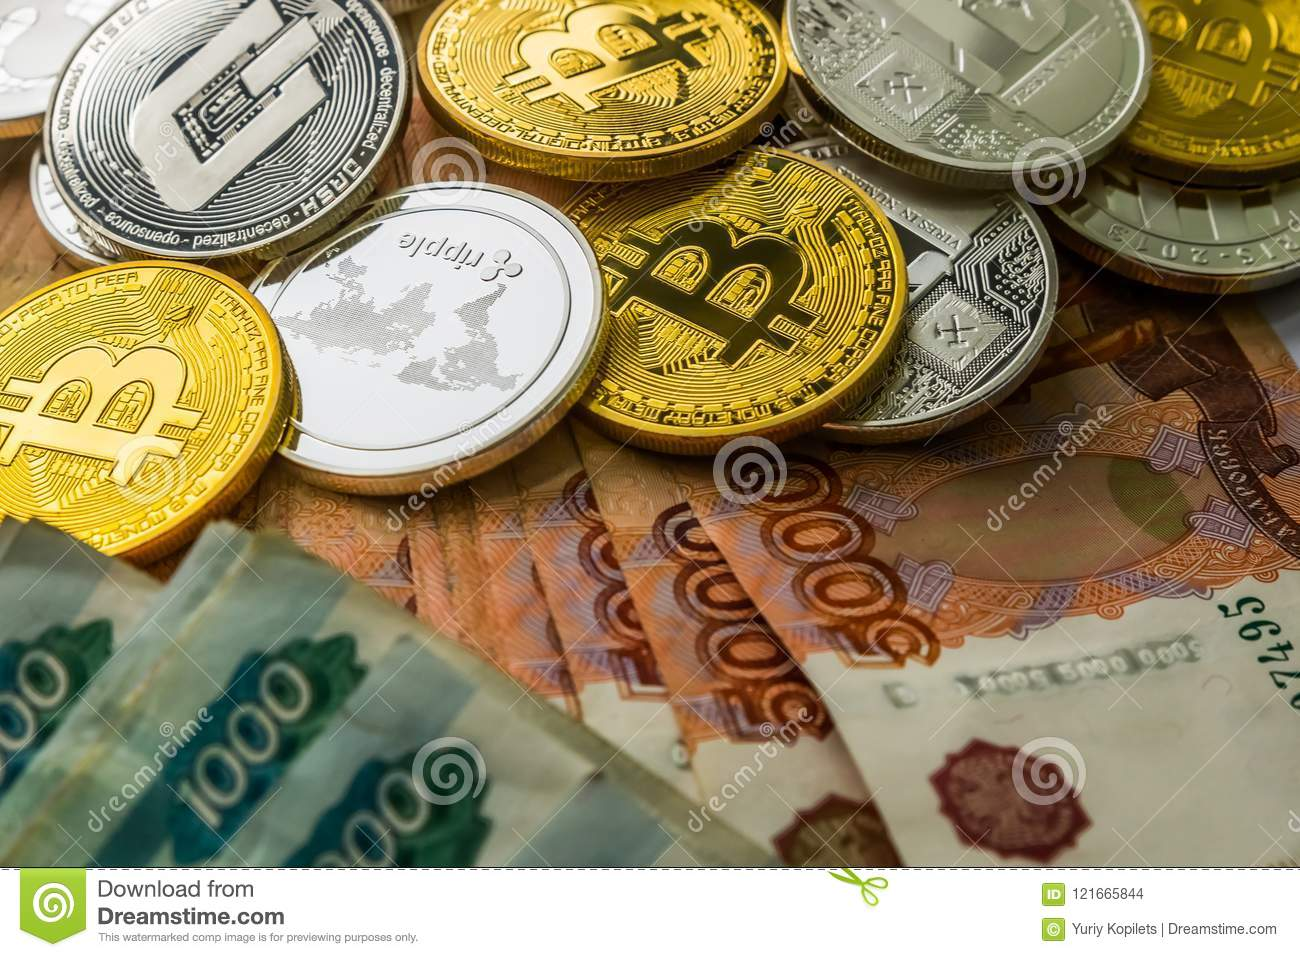 How to exchange Bitcoin for rubles 22